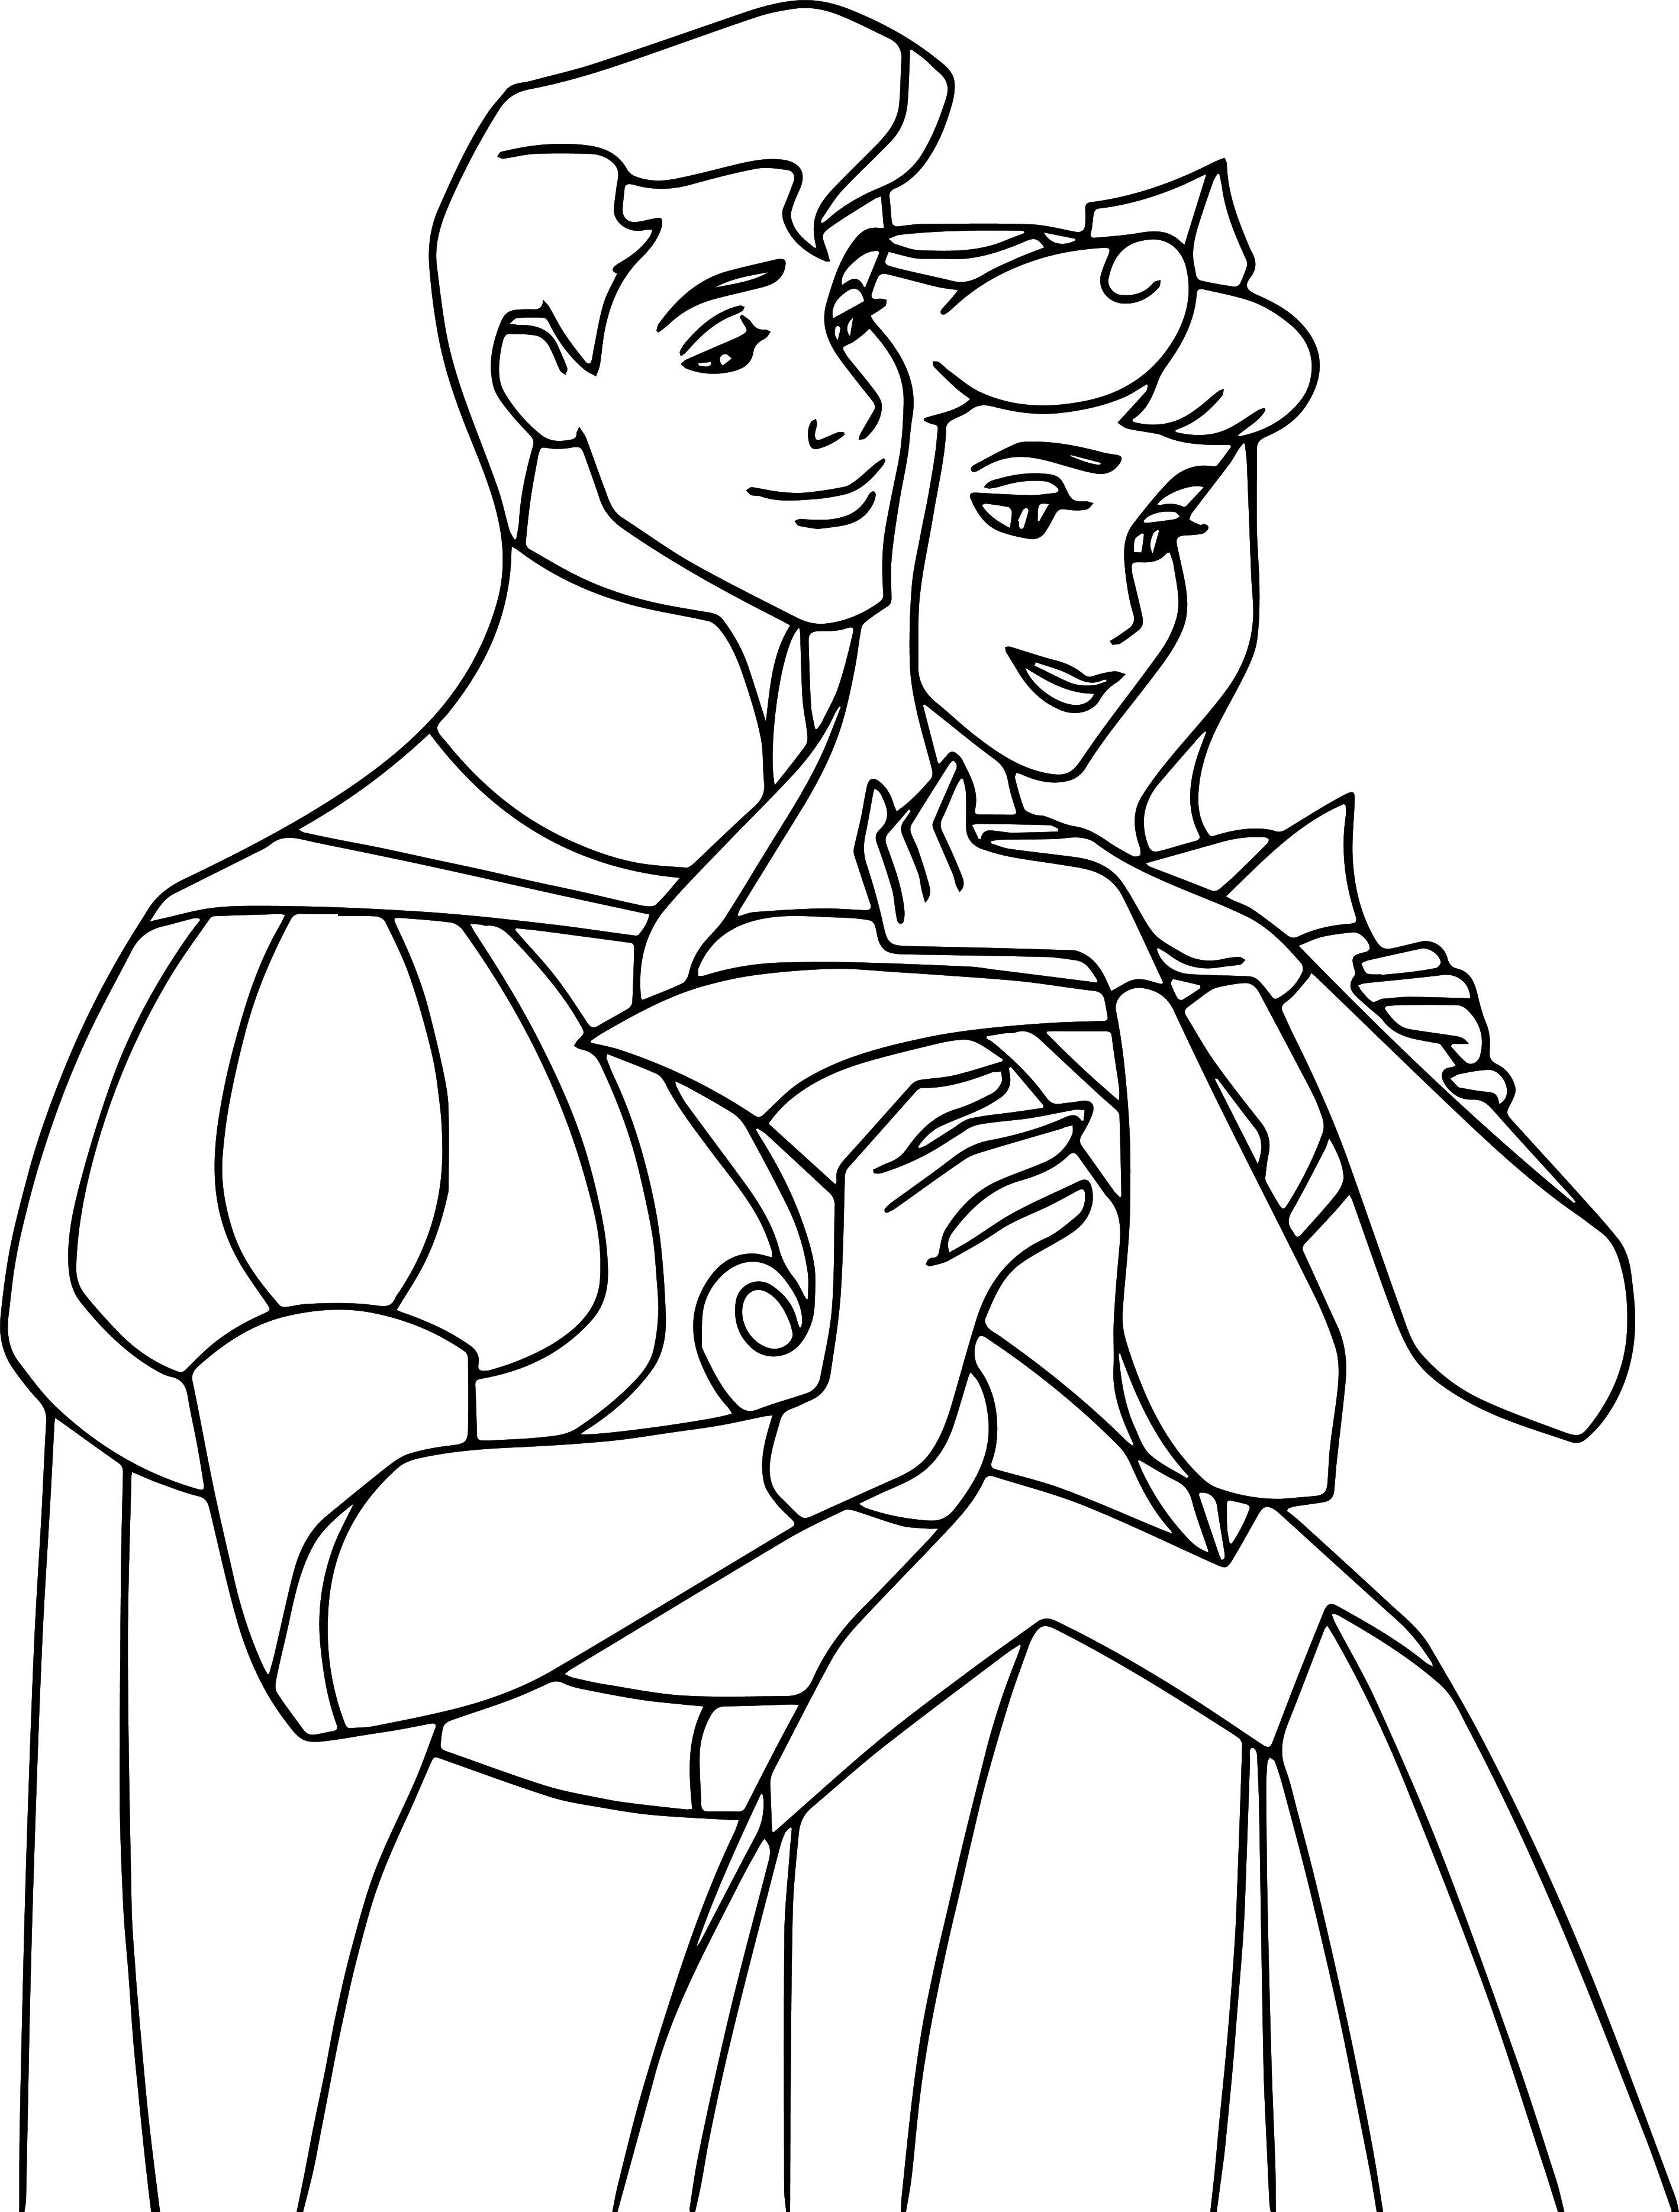 Disney Aurora S Story Aurora And Phillip Coloring Pages Sleeping